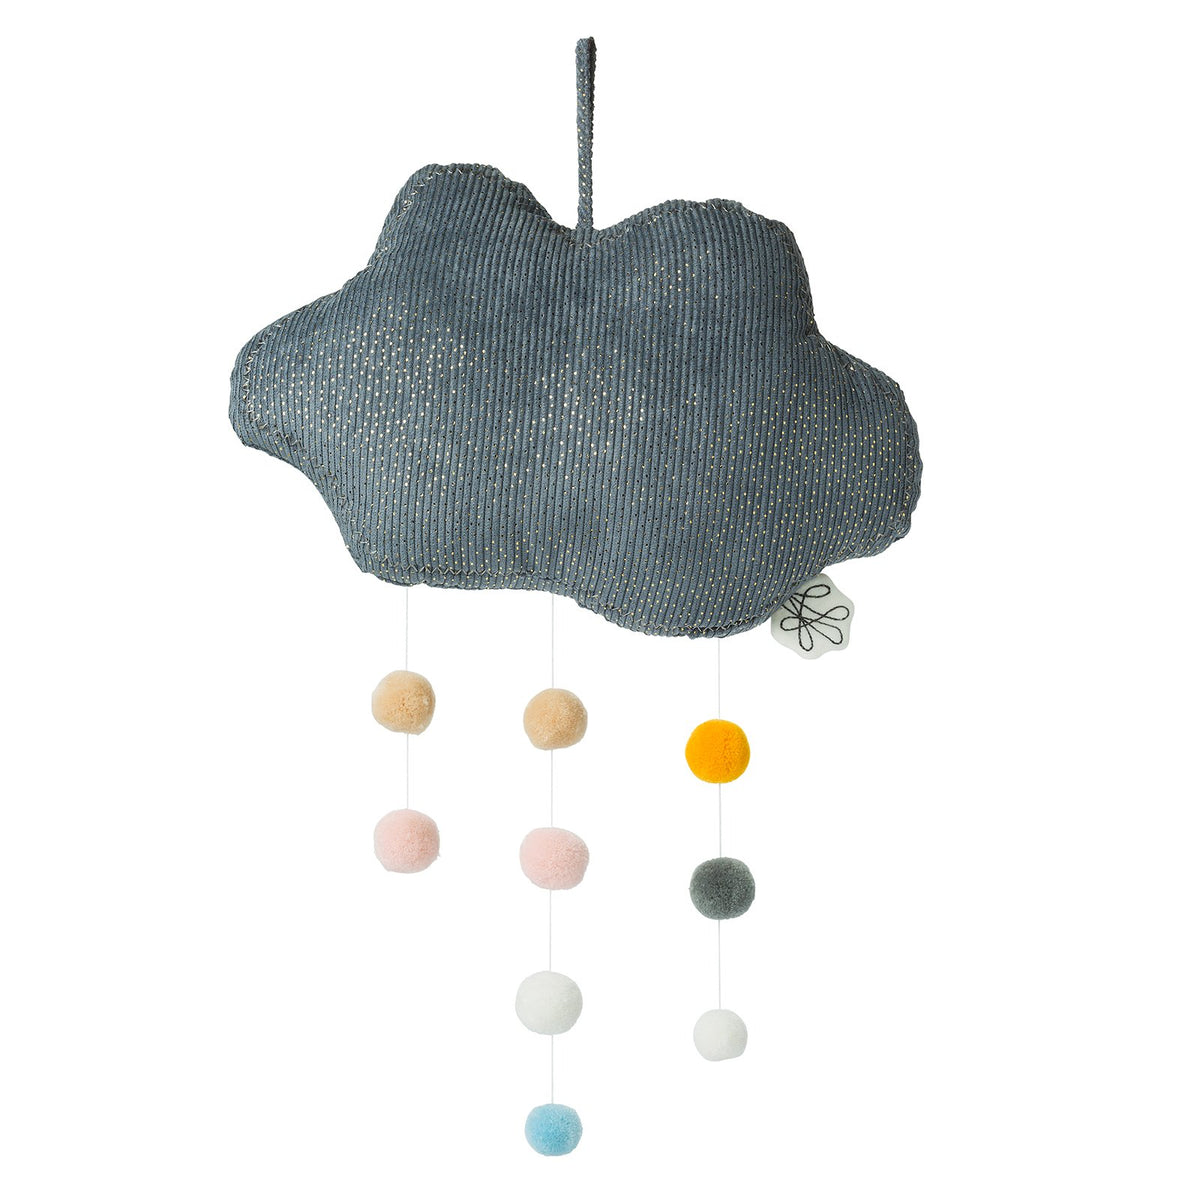 PICCA LOULOU Cloud Corduroy Grey With PomPoms